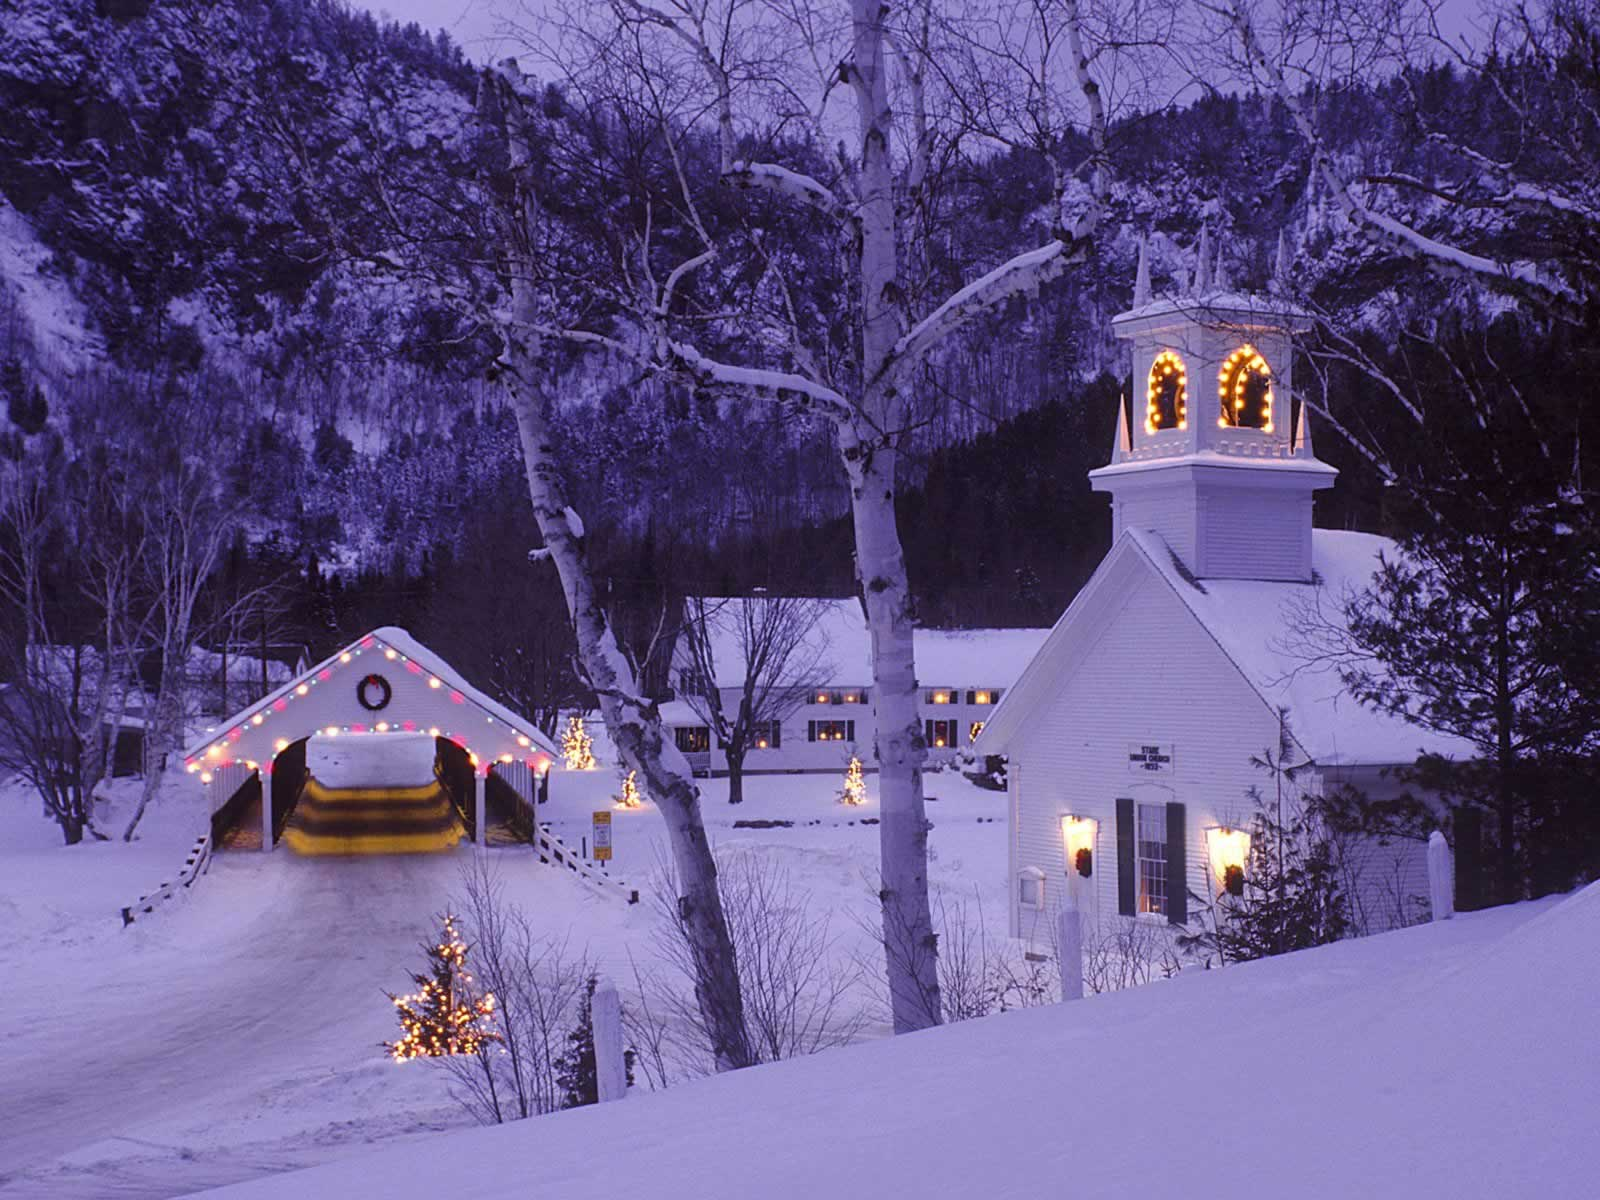 Country Christmas Background Wallpaper.A Country Christmas Stark New Hampshire Christmas Landscapes